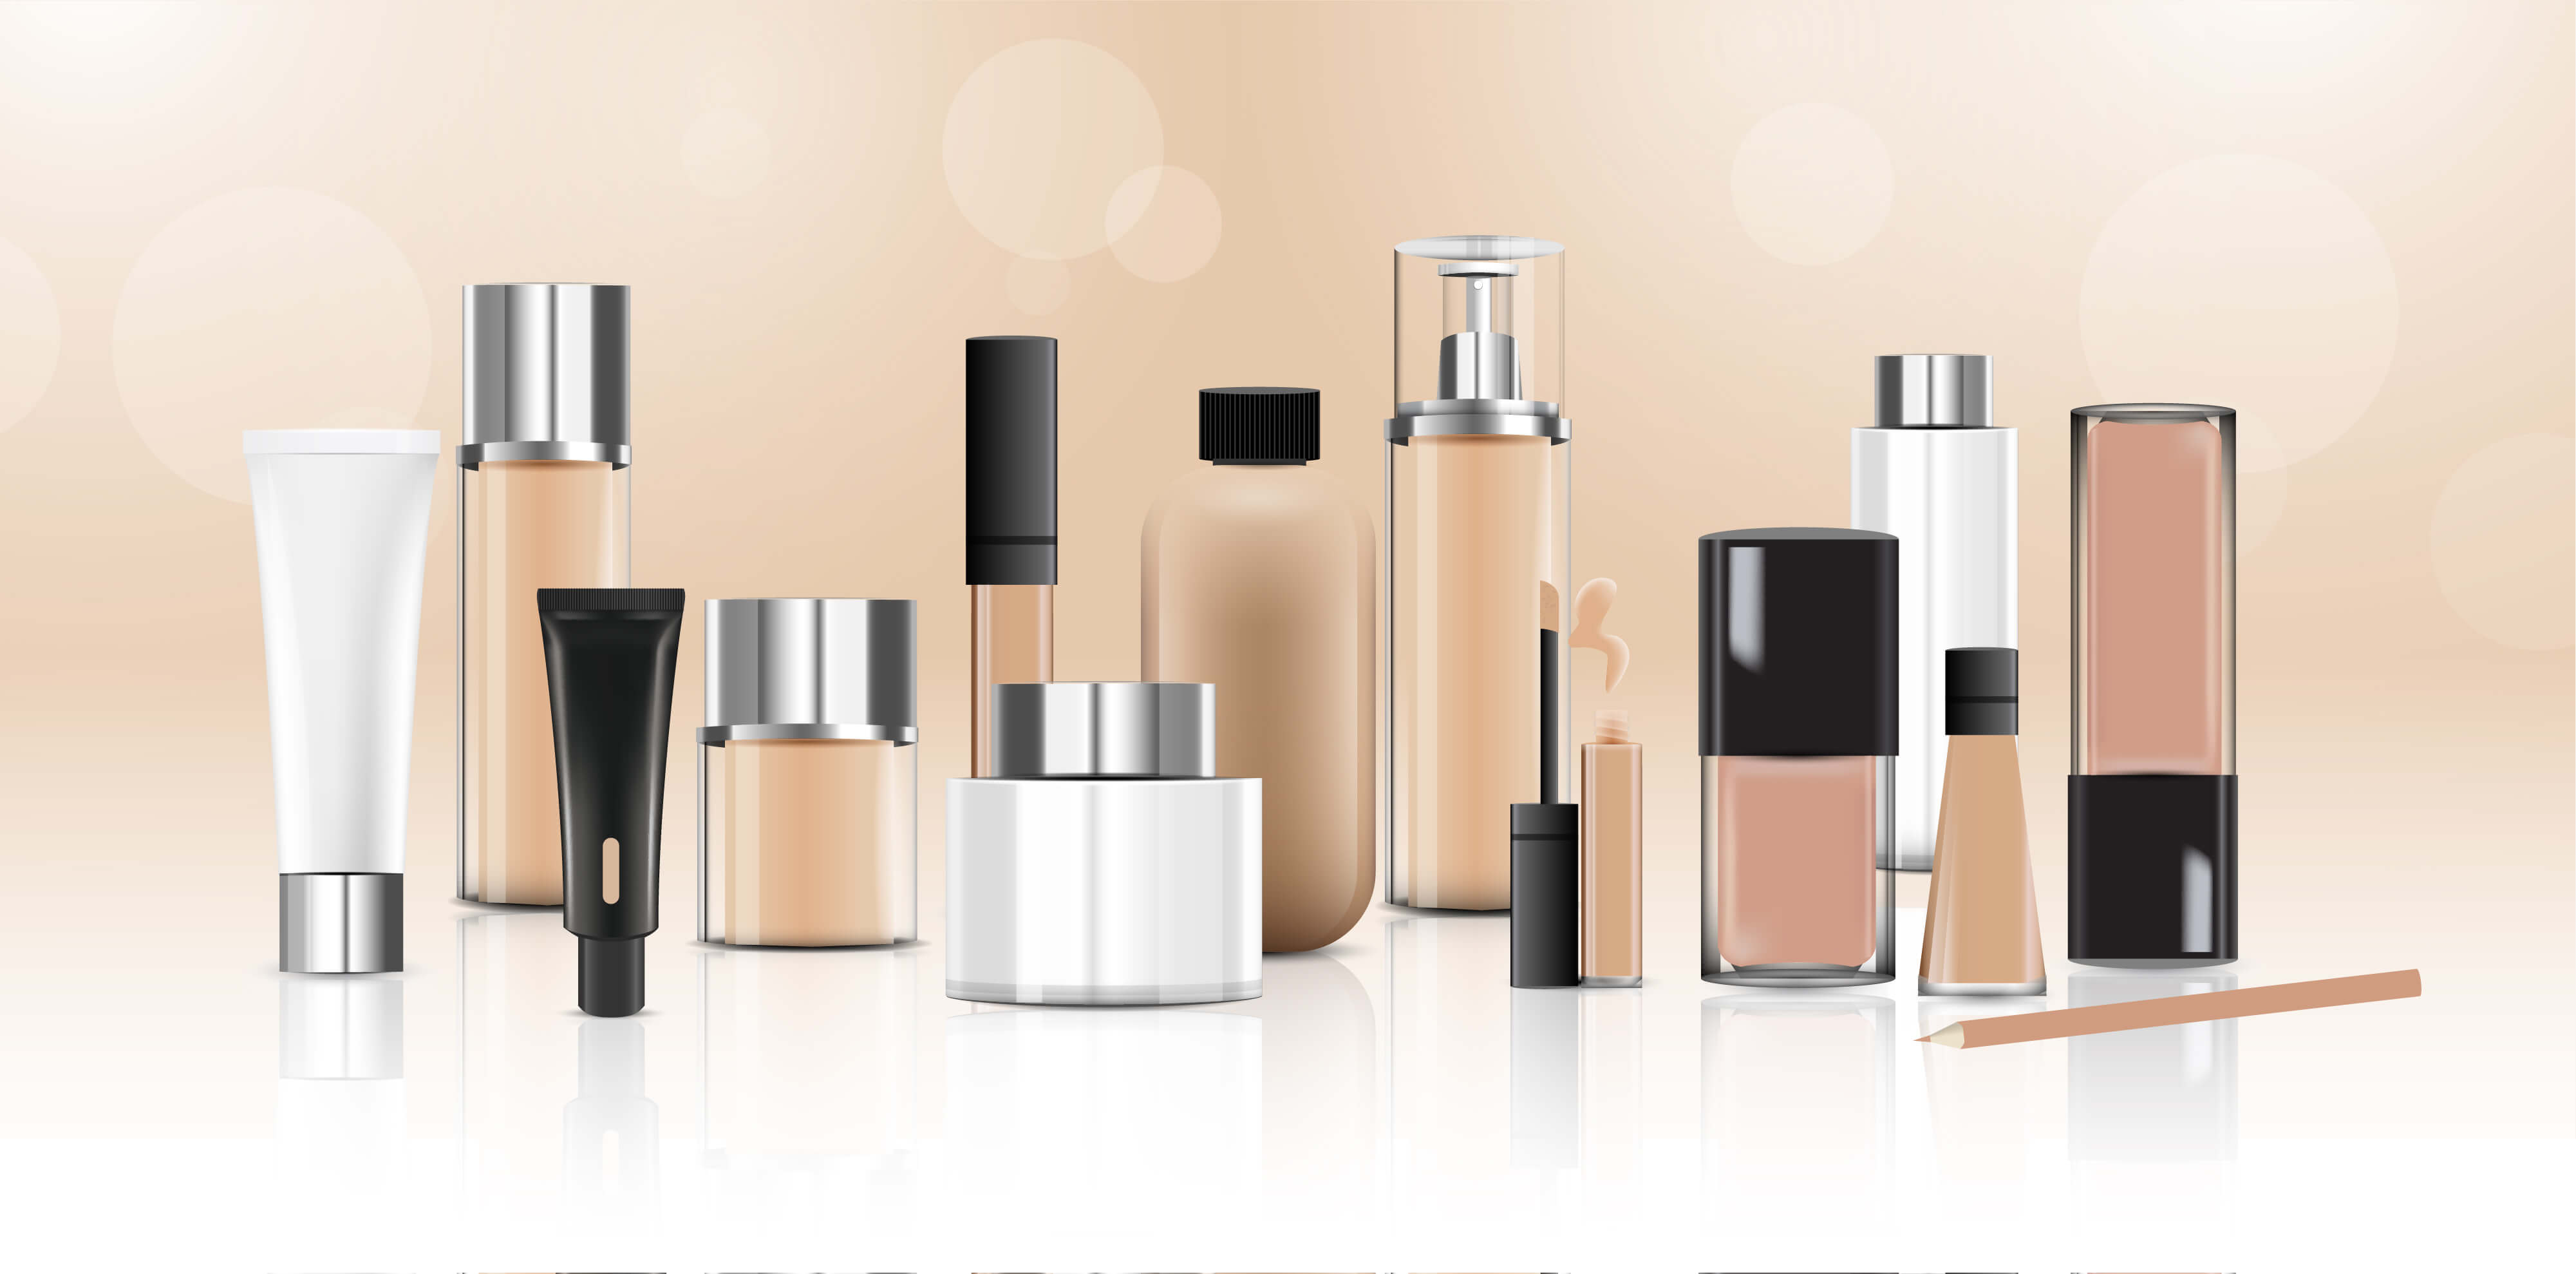 Packaging for Beauty Products